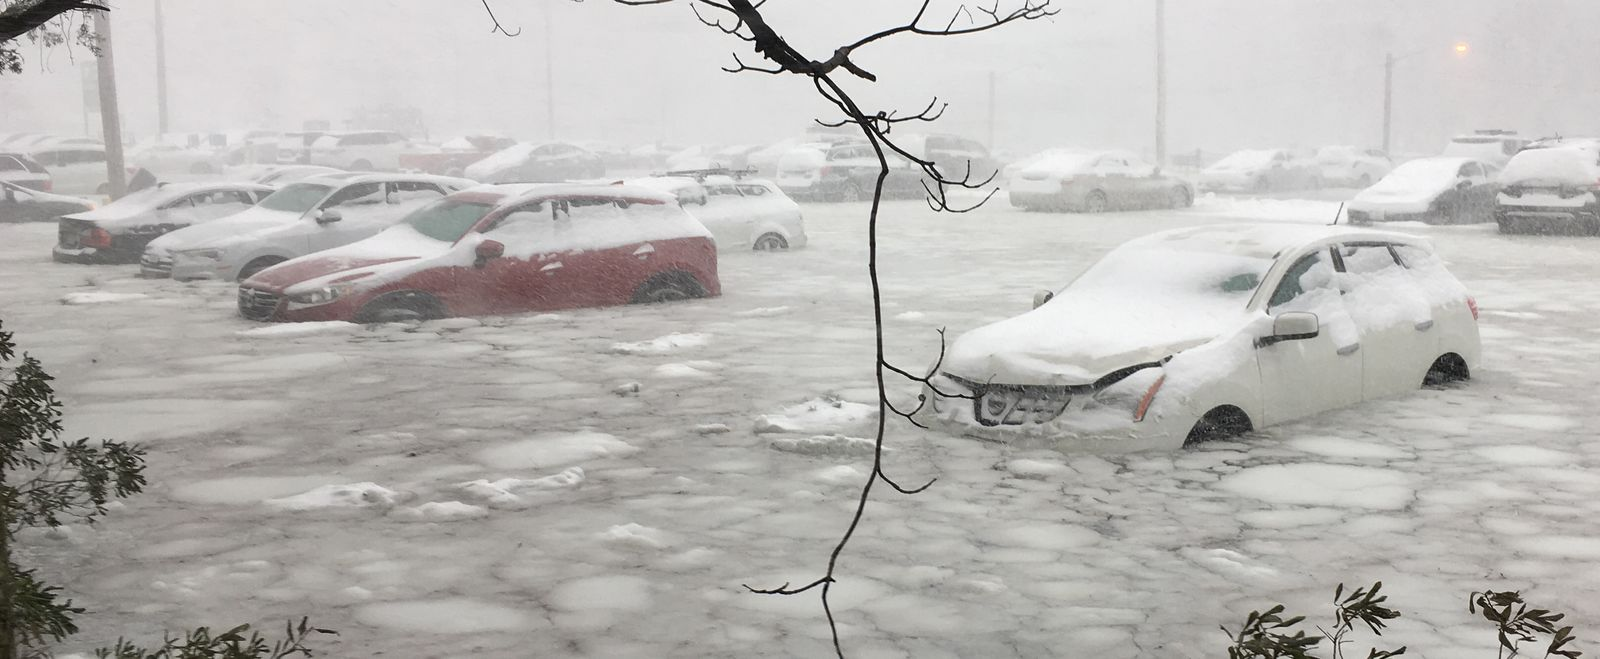 Cars parked by Boston's waterfront are flooded with snow and water